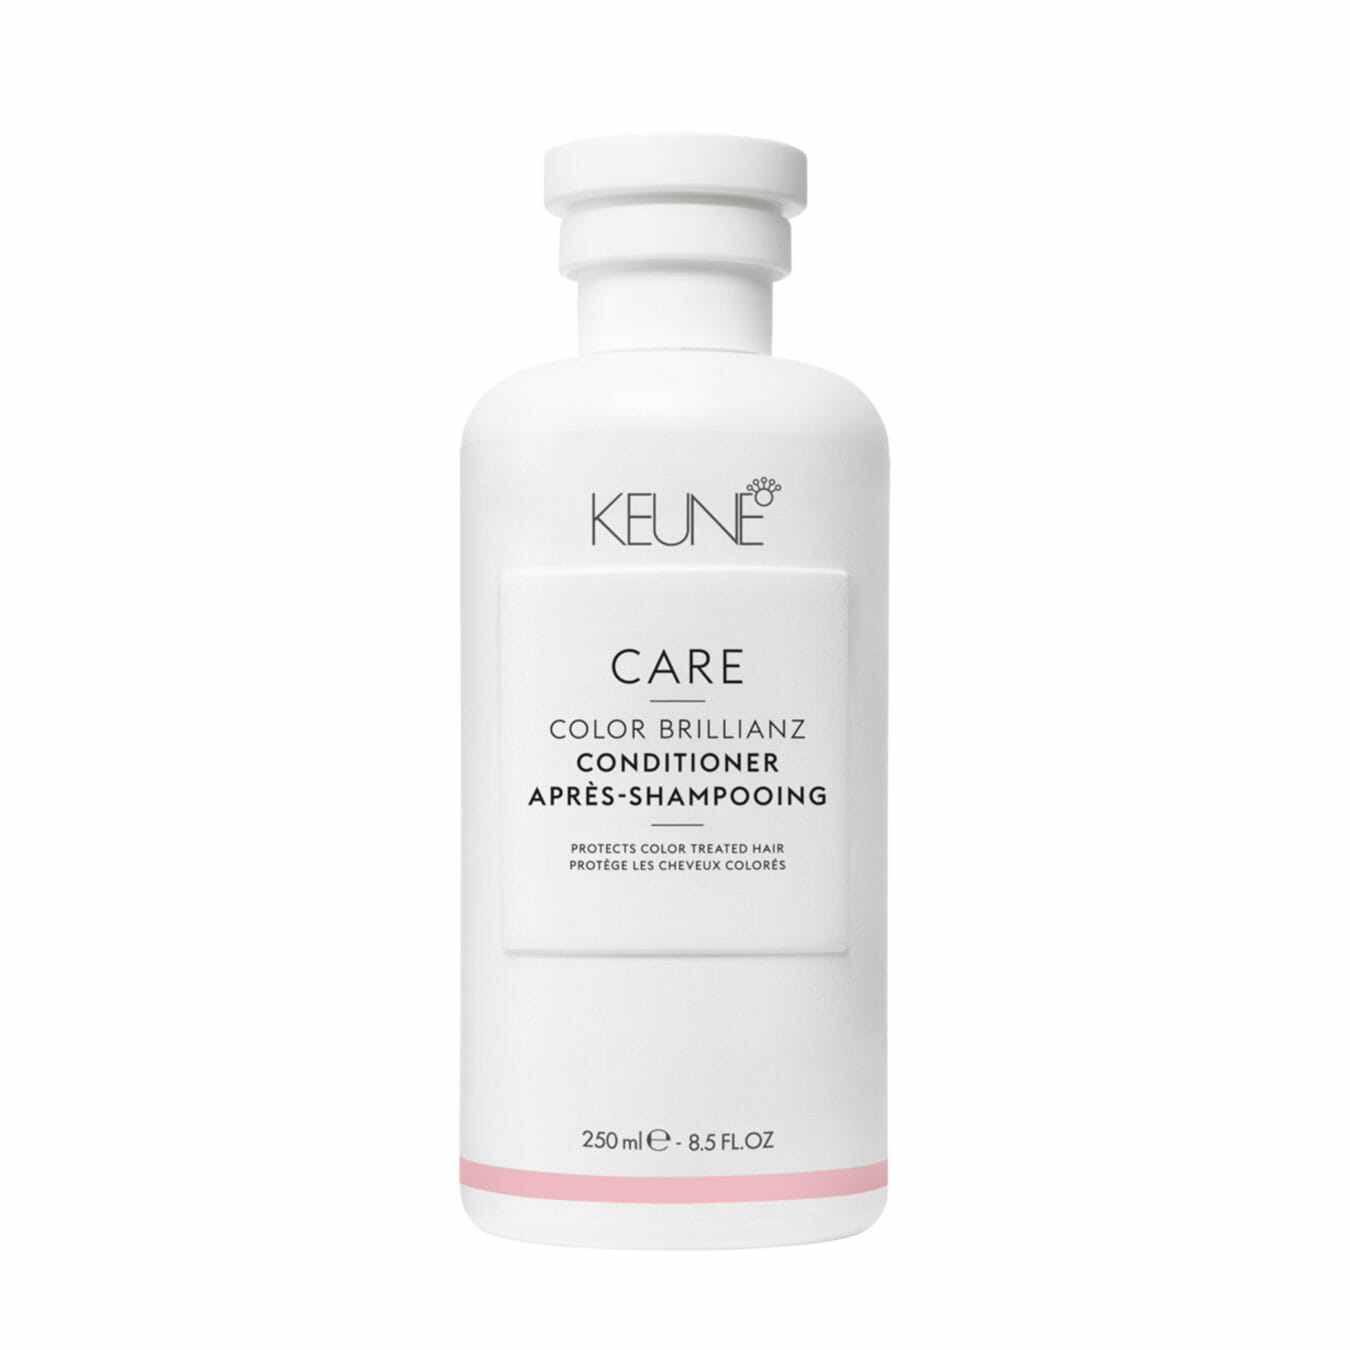 Koop Keune Care Color Brillianz Conditioner 250ml